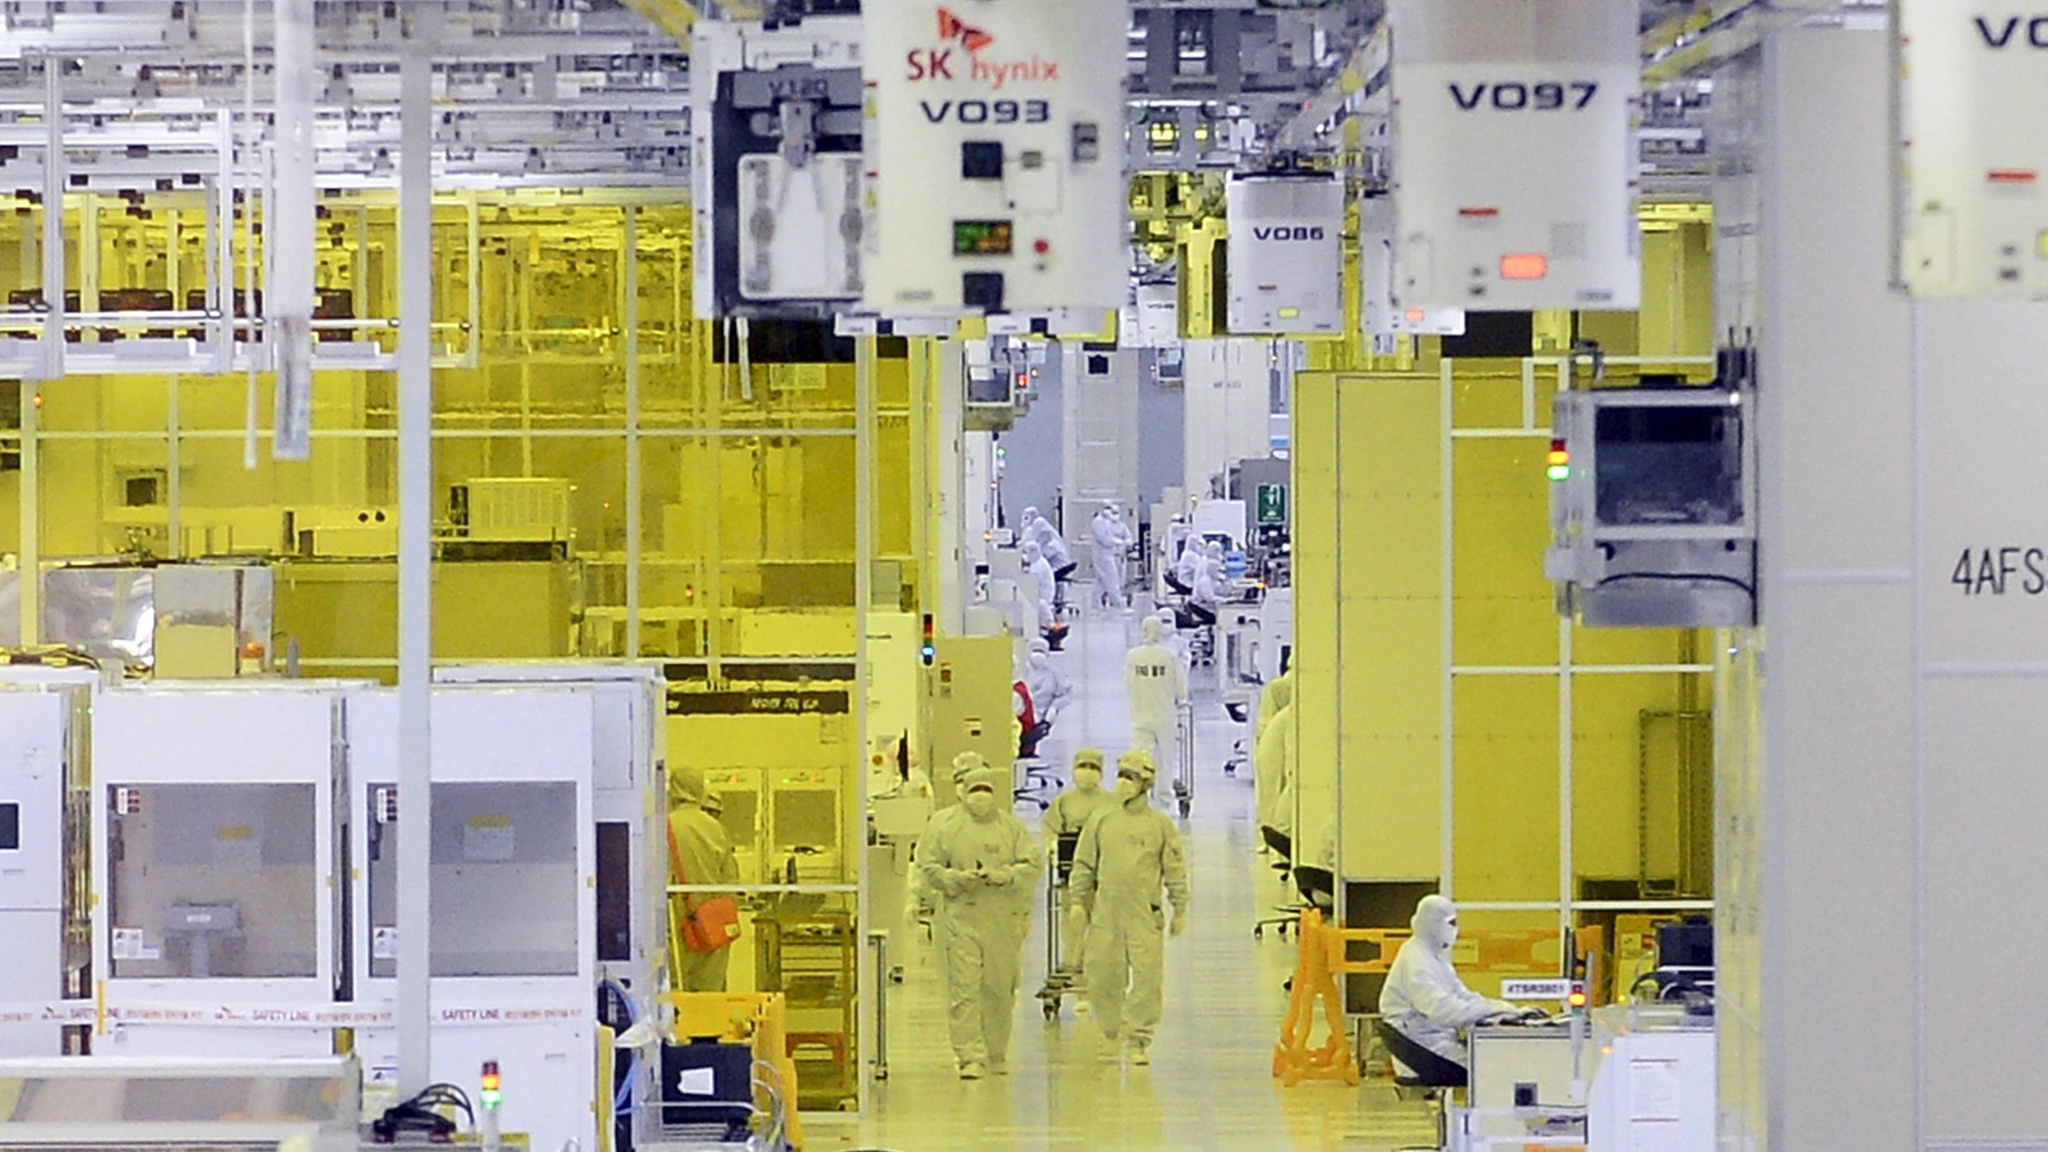 SK Hynix to invest $107bn in 4 new semiconductor plants